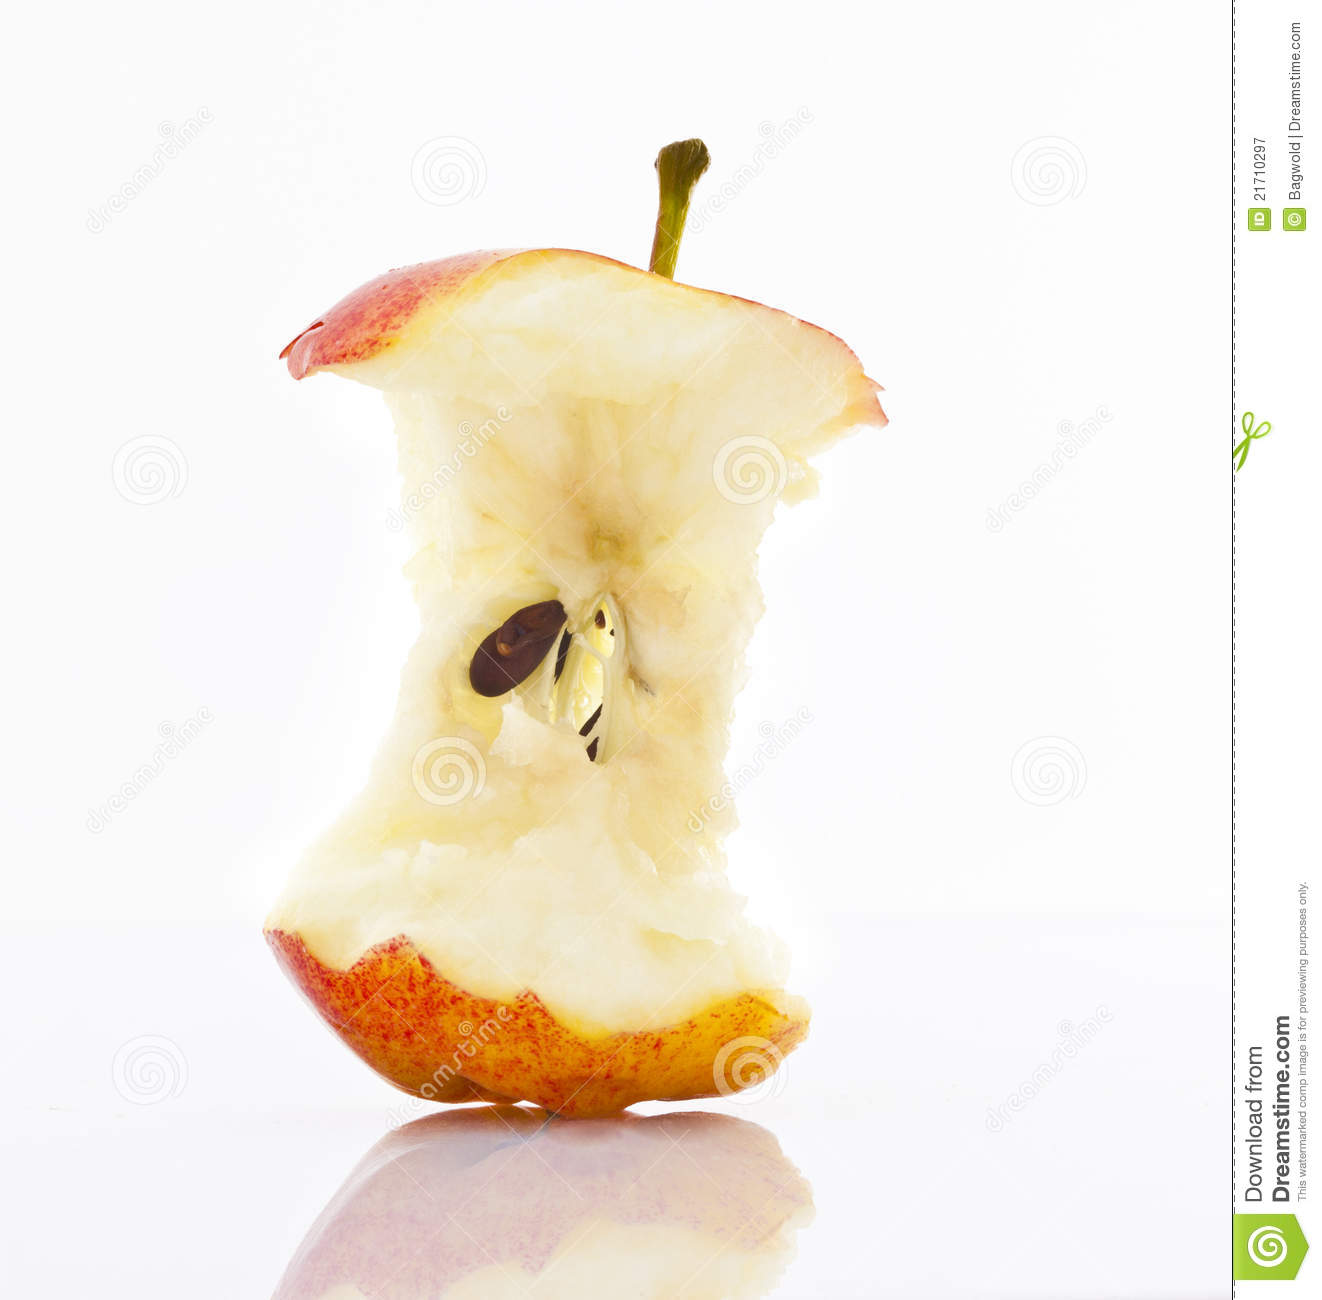 Apple Core Royalty Free Stock Photography Image 21710297